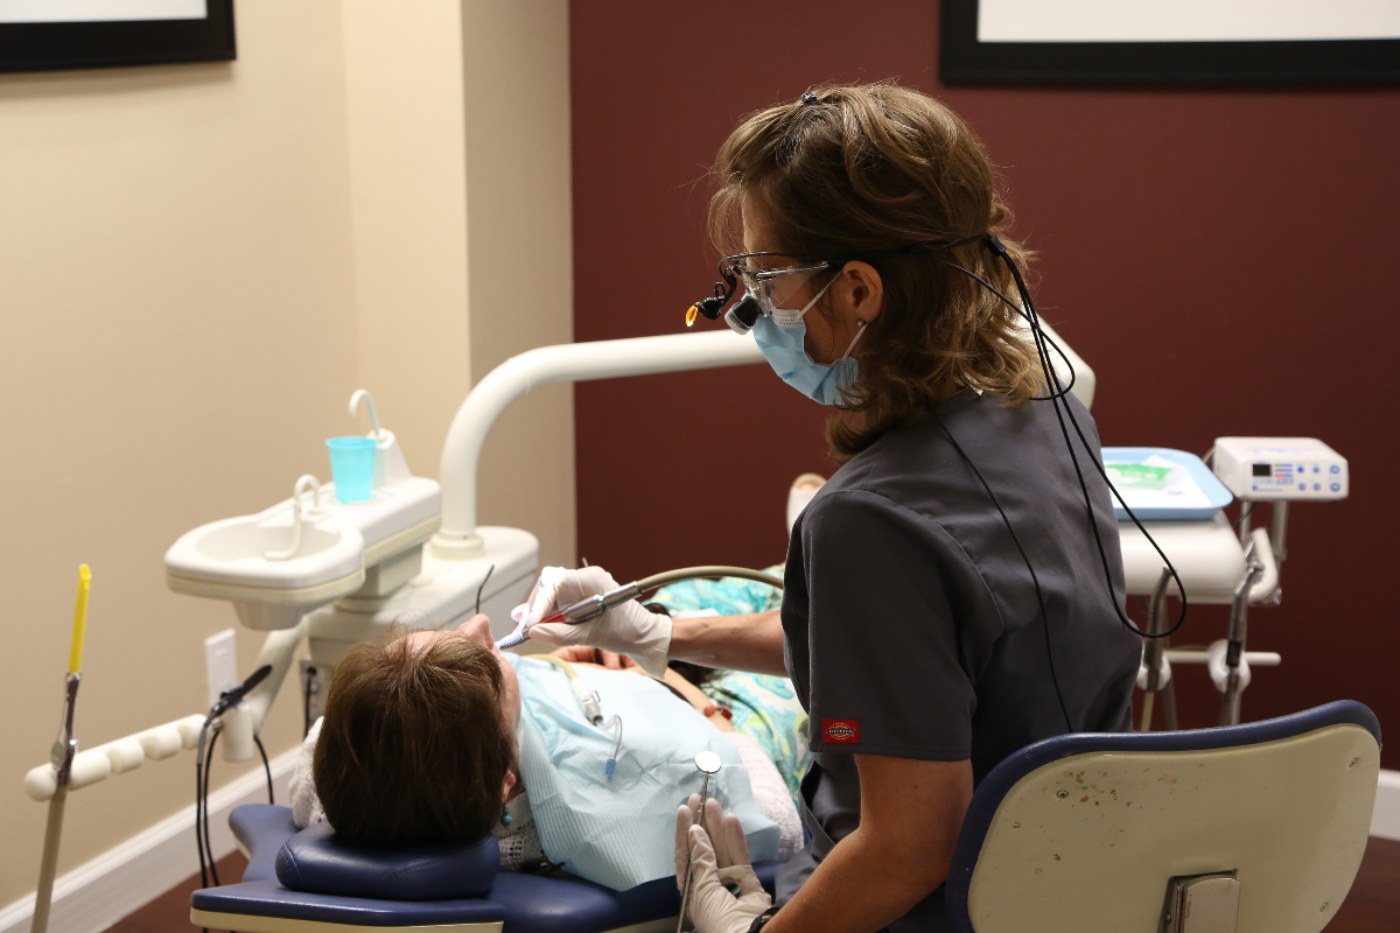 dental assistant working on a male patient